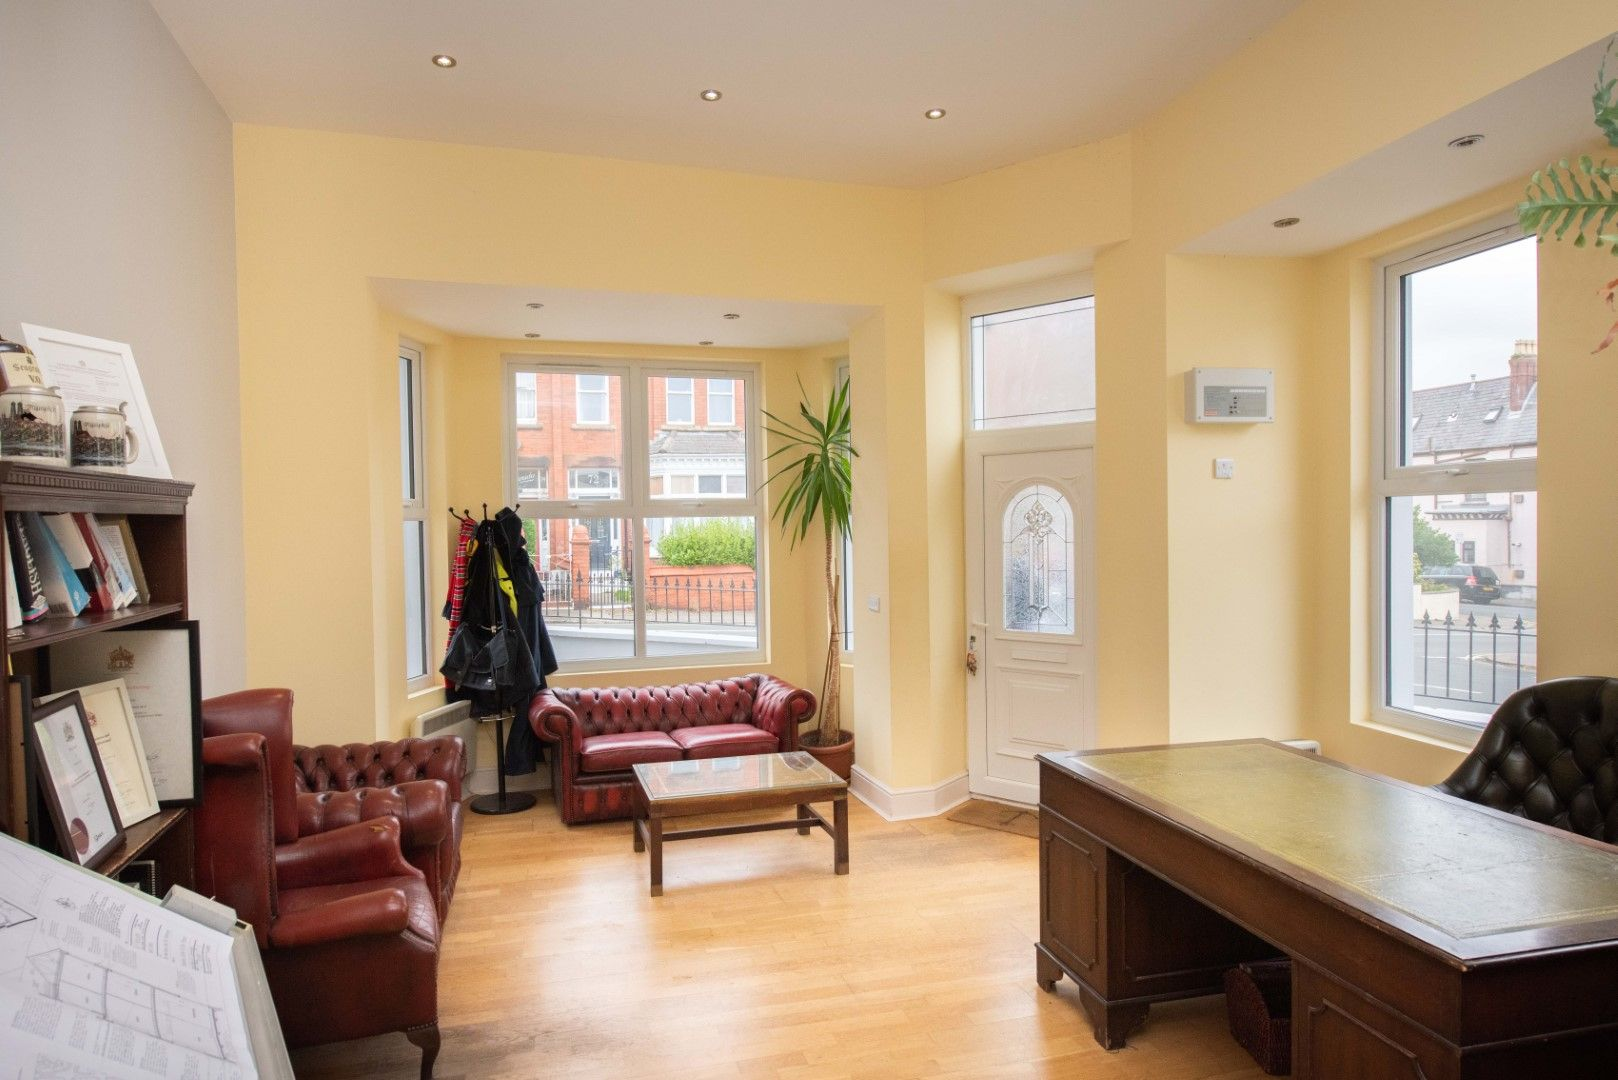 Office For Sale in Douglas - Property photograph